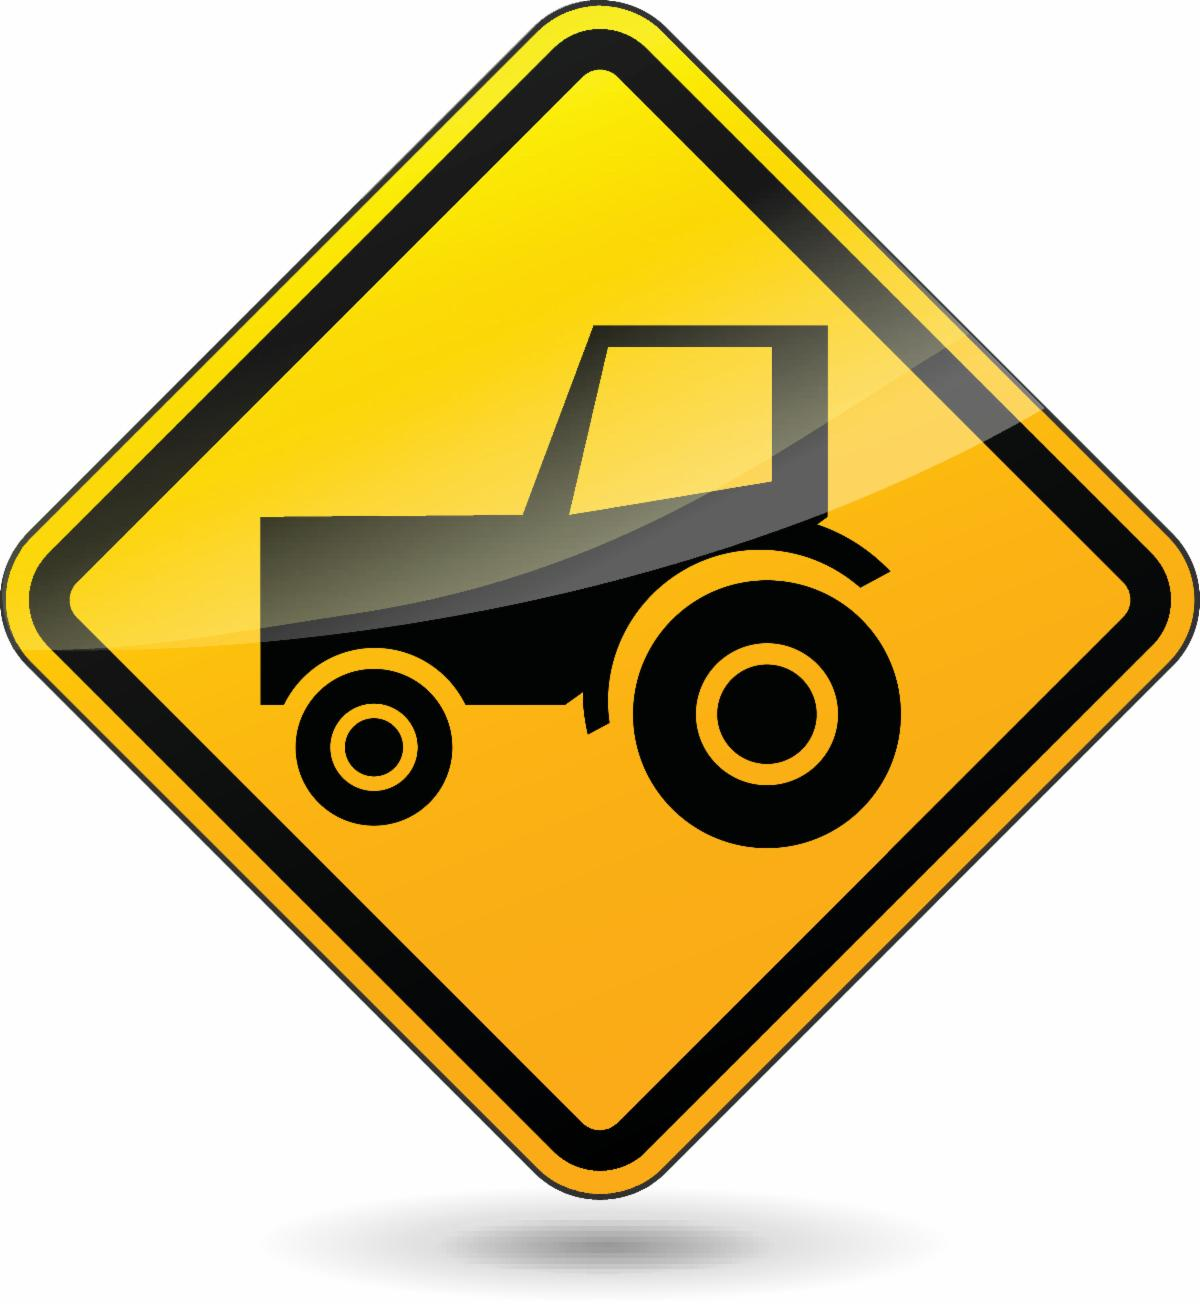 Tractor road sign